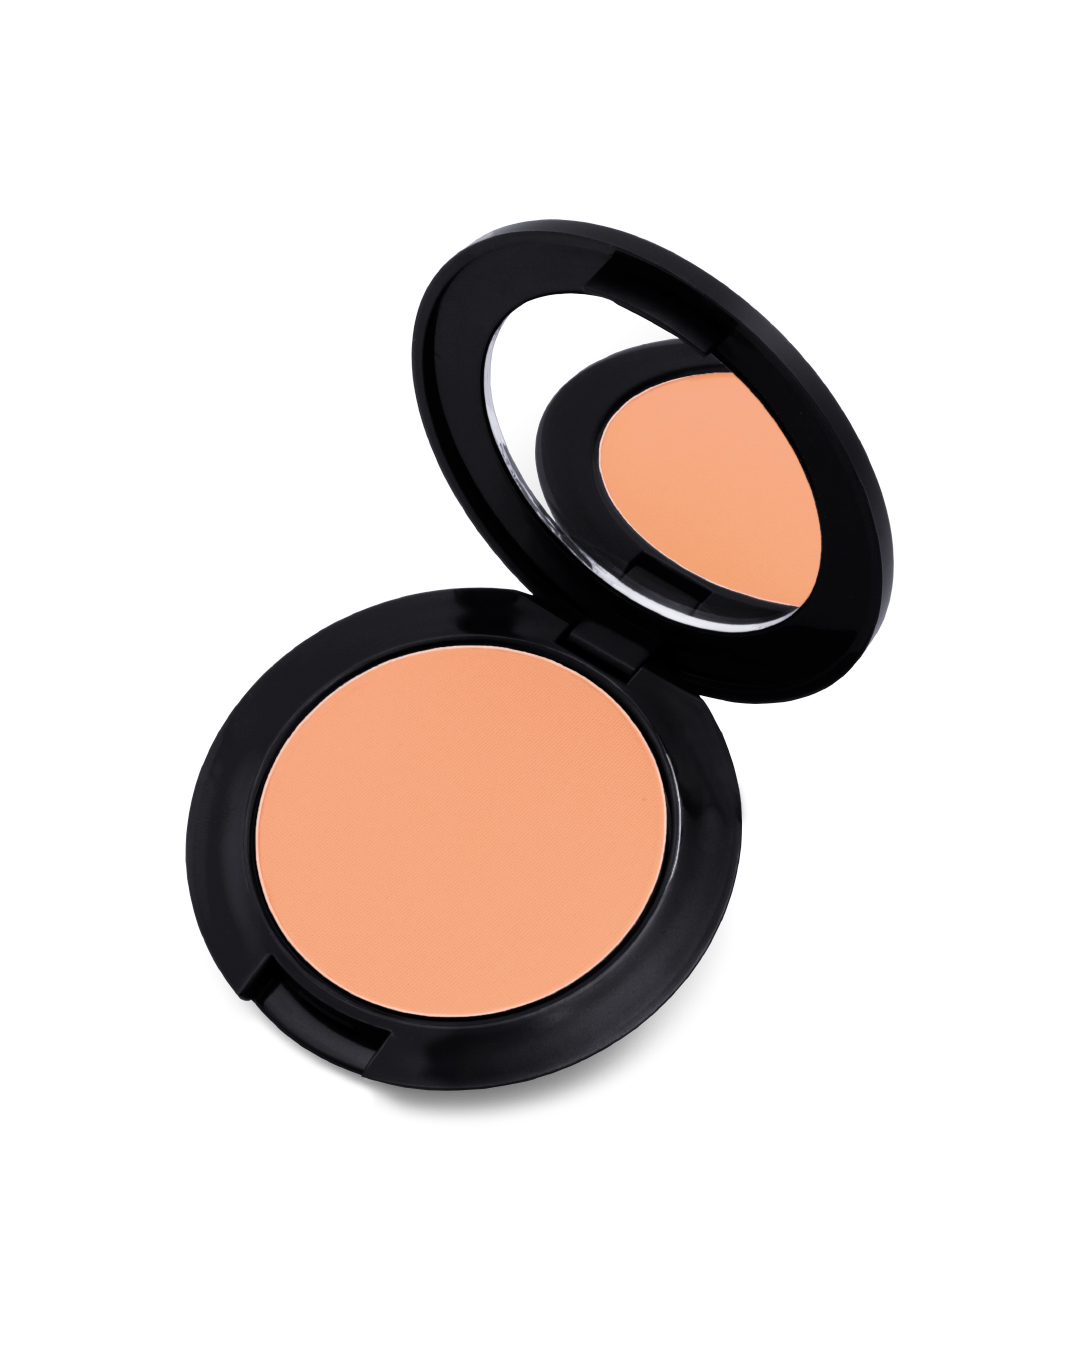 SUNF - OIL CONTROL PRESSED POWDER